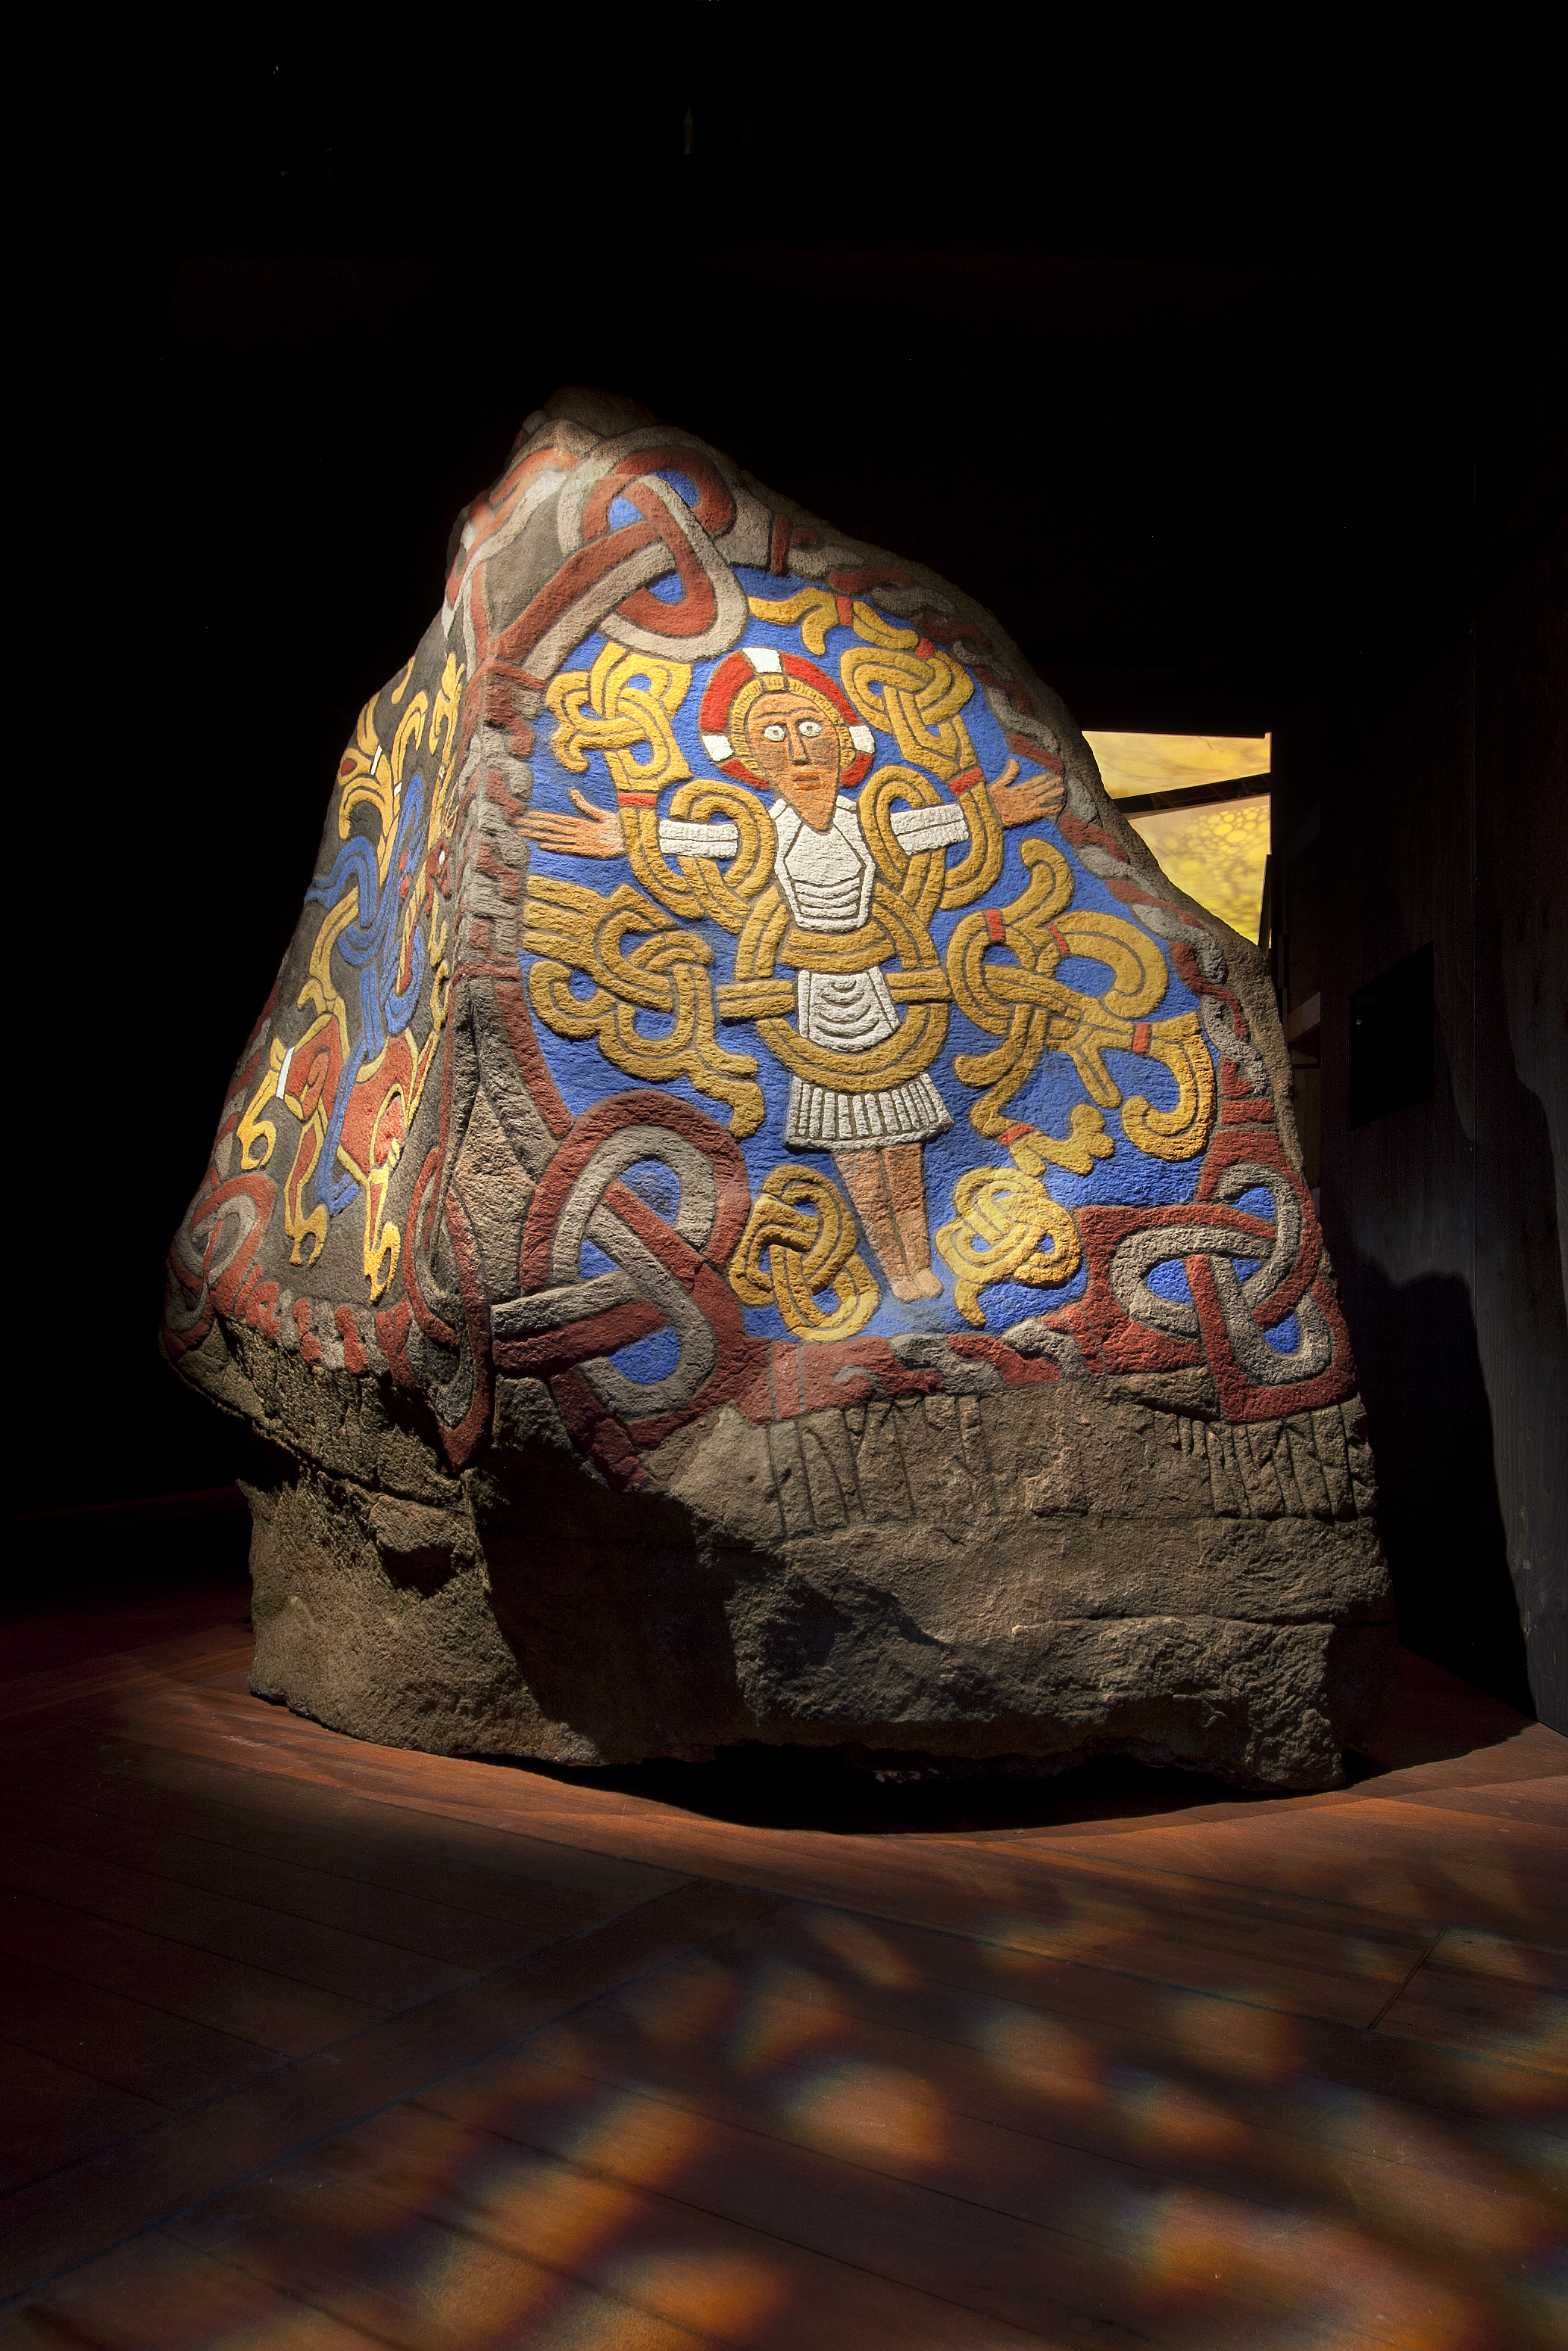 The Norsemen The_Jelling_Stone_-_VIKING_exhibition_at_the_National_Museum_of_Denmark_-_Photo_The_National_Museum_of_Denmark_%289084035770%29